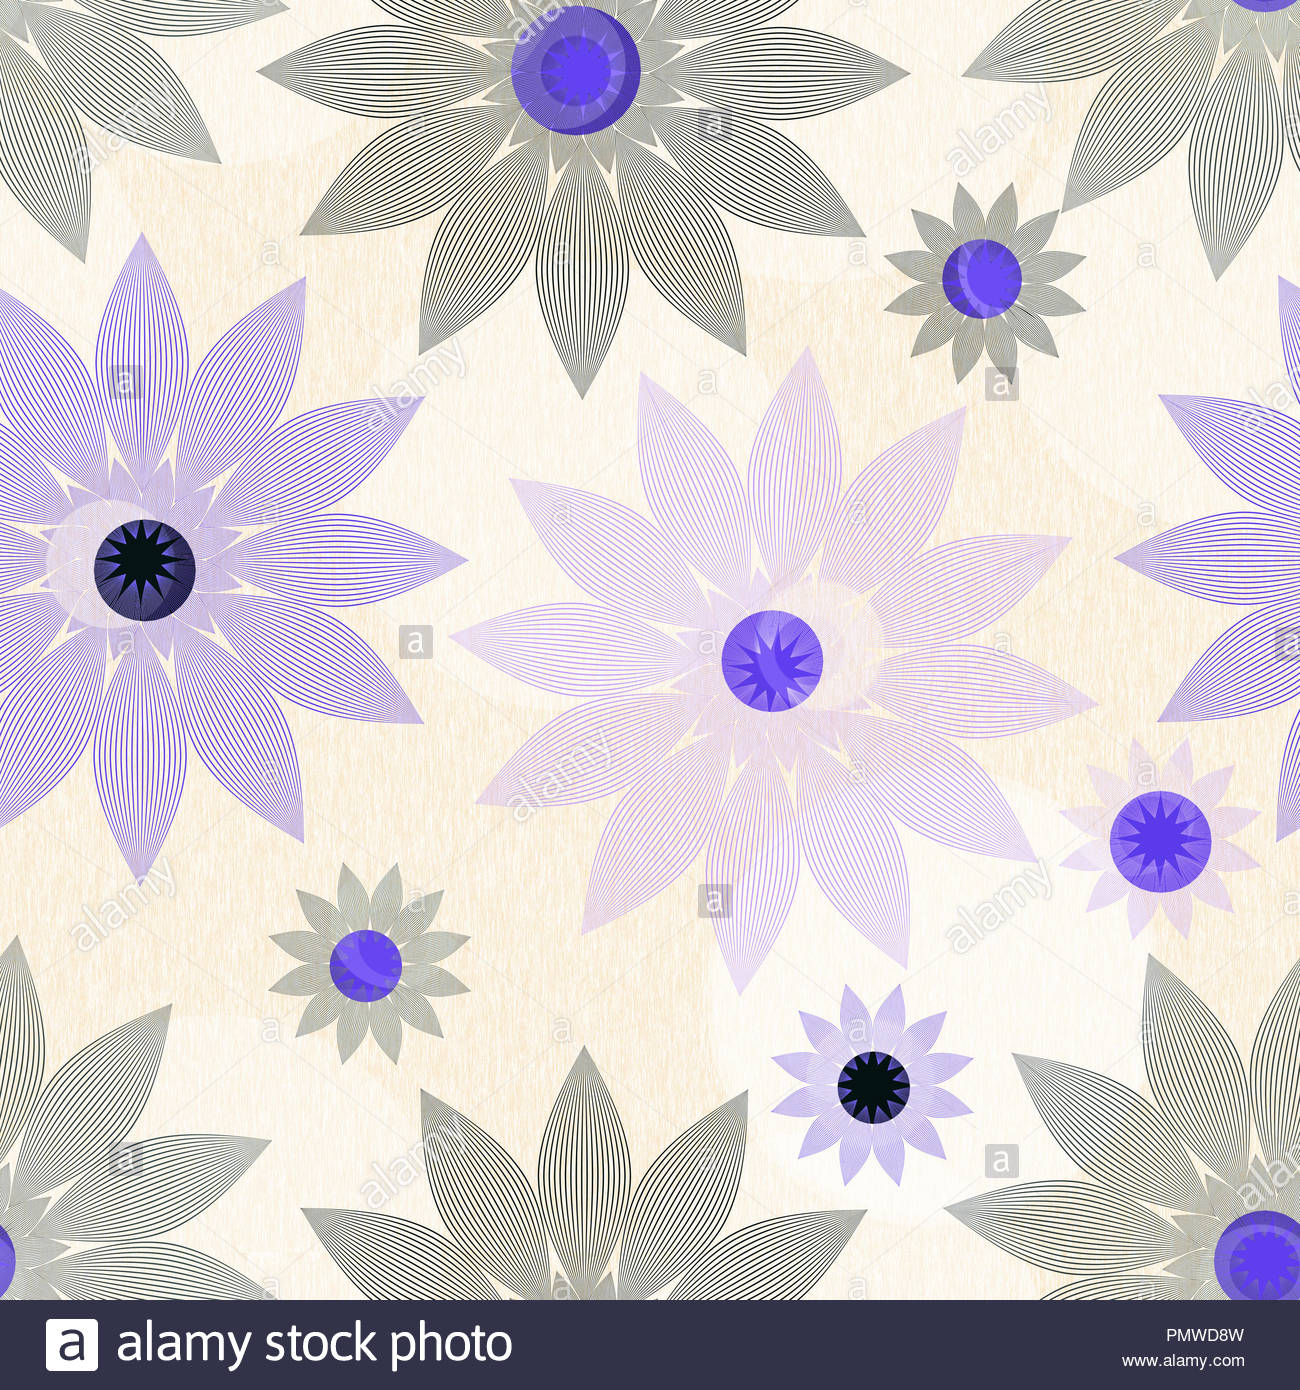 Vintage Style Floral Wallpaper Tile In Ivory And Purple Black